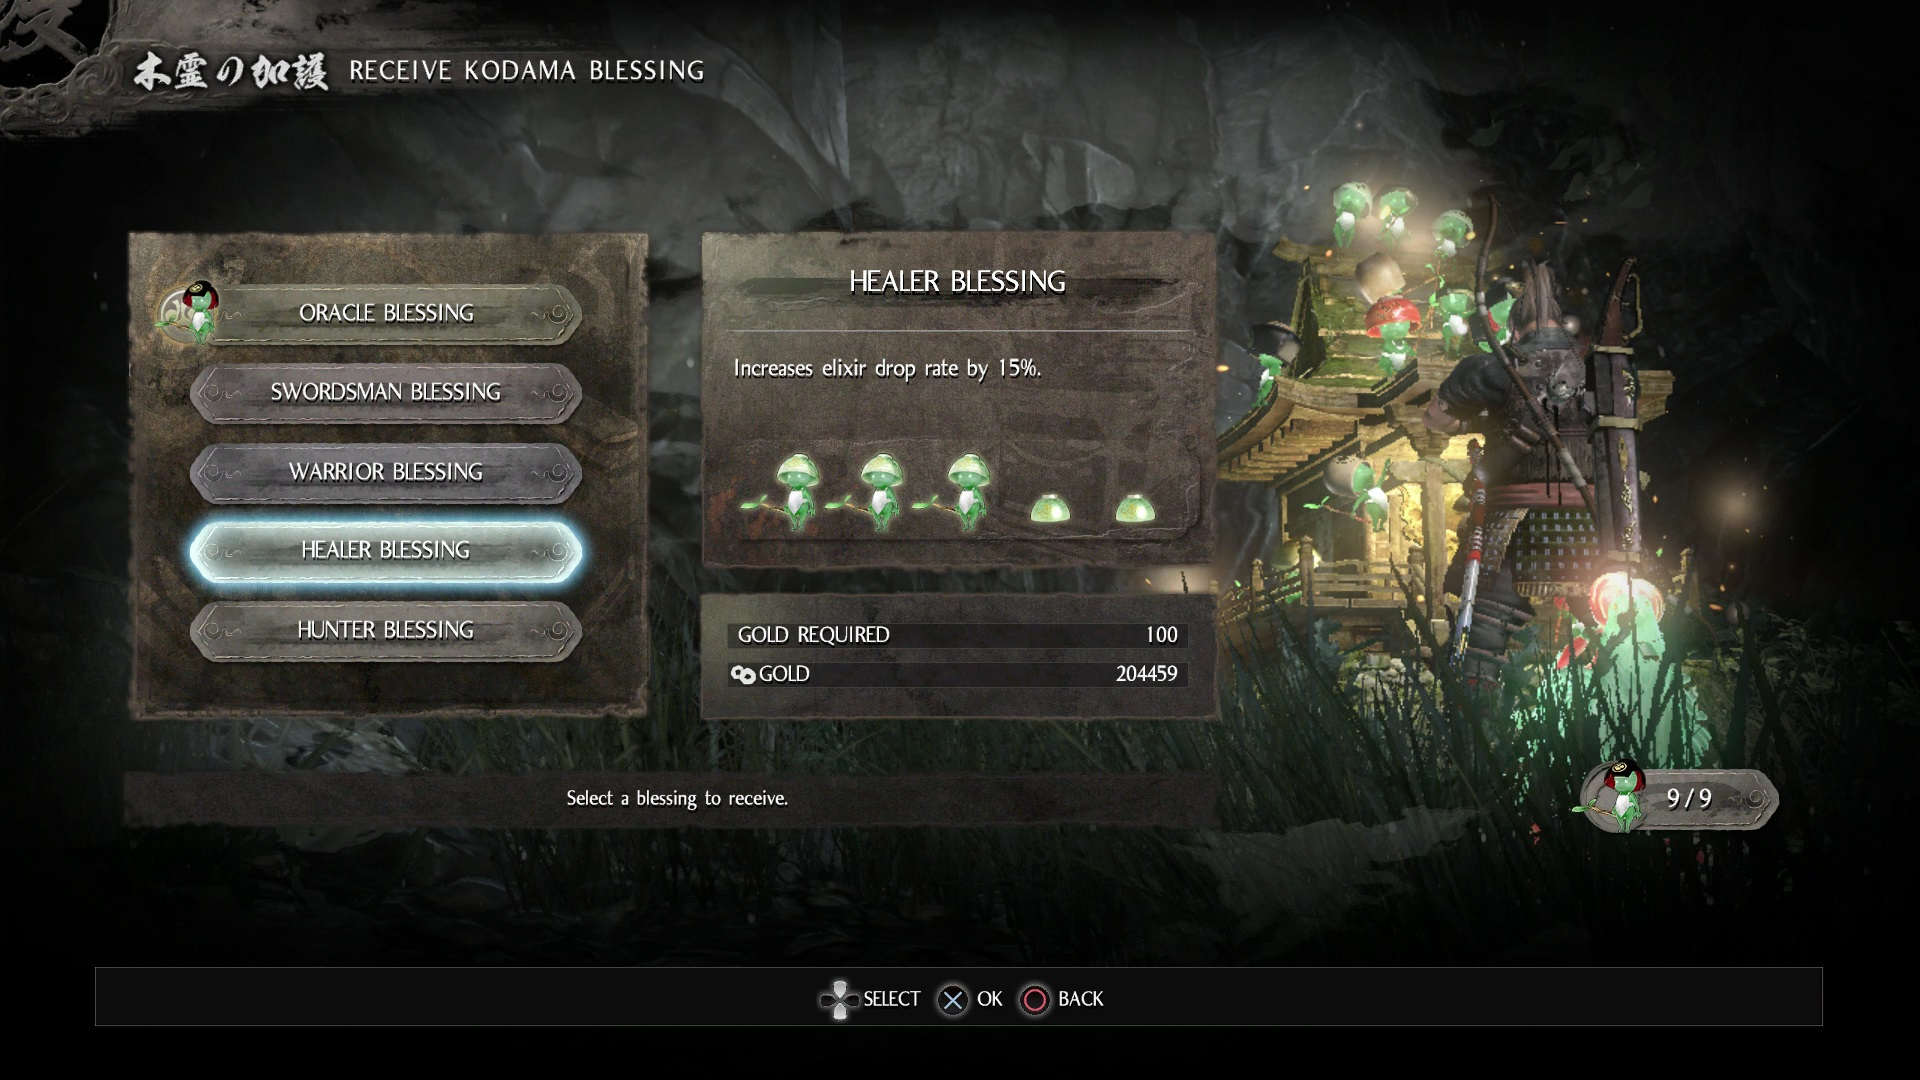 Nioh - How to Use Kodama   LevelCamp - Guides, News, and Fun with Games